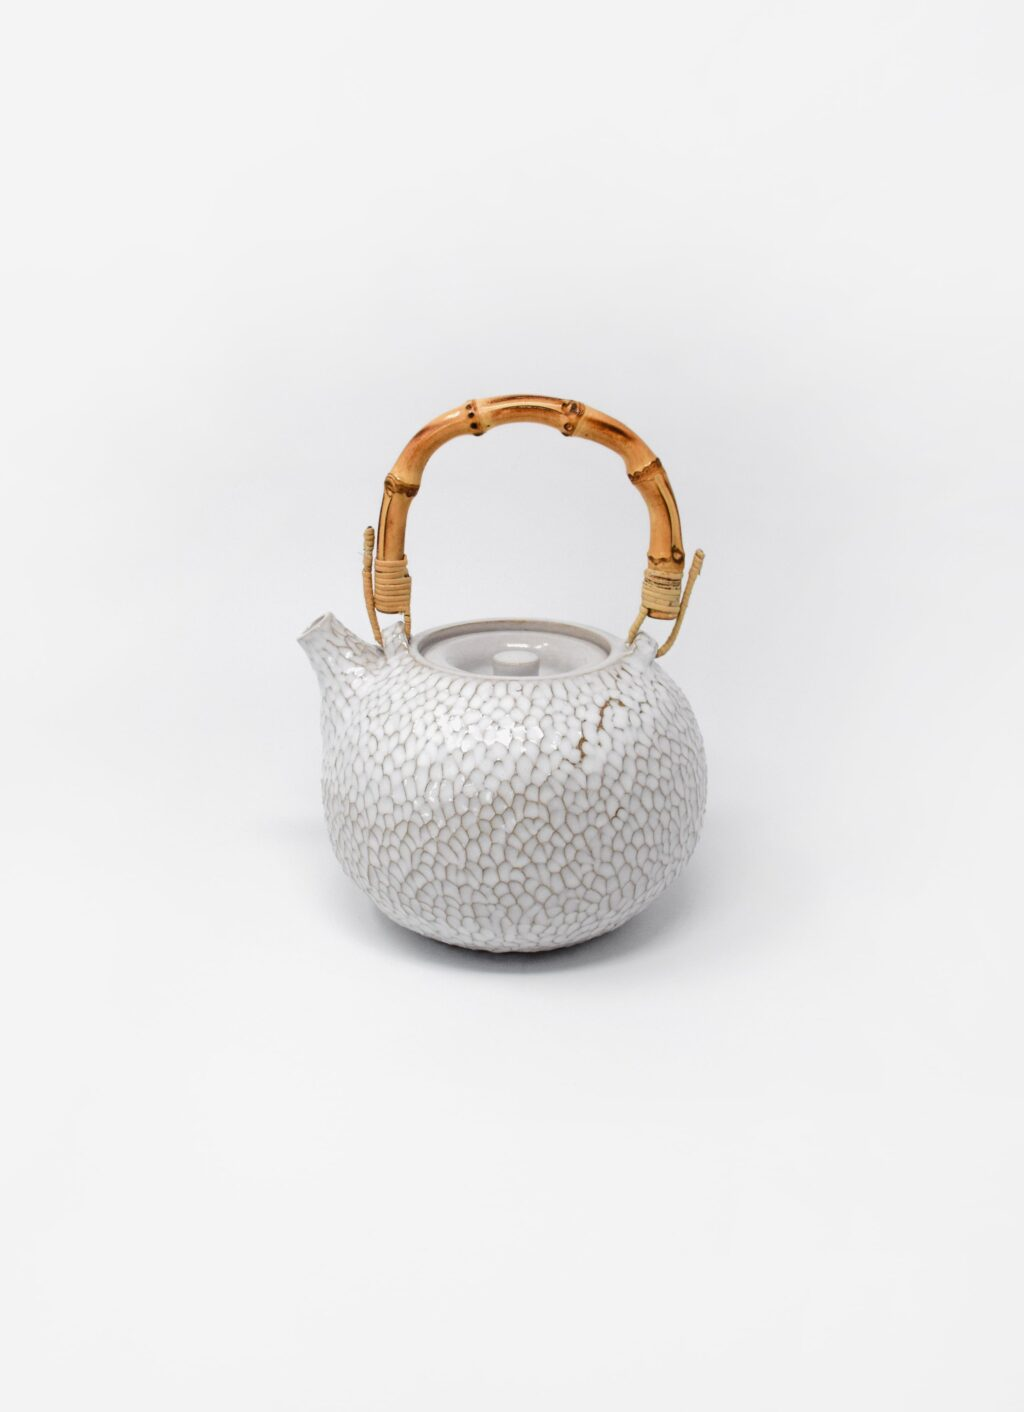 Aurore Vienne - Carved Ceramic Teapot with Bamboo Handle - white